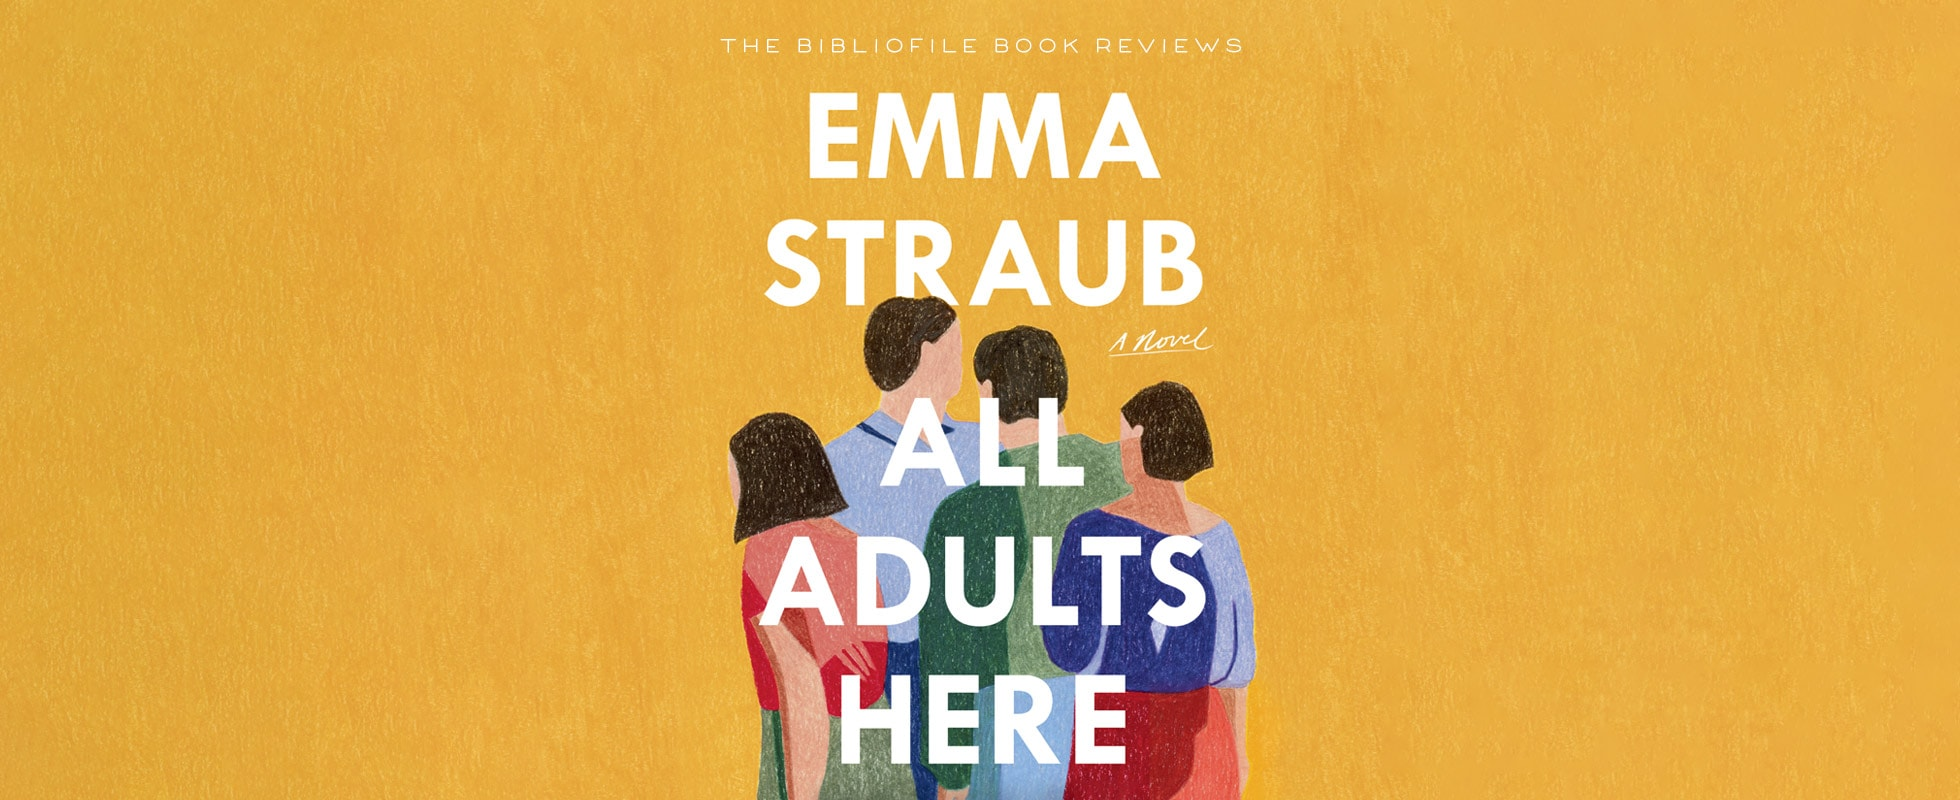 all adults here emma straub book review plot summary synopsis